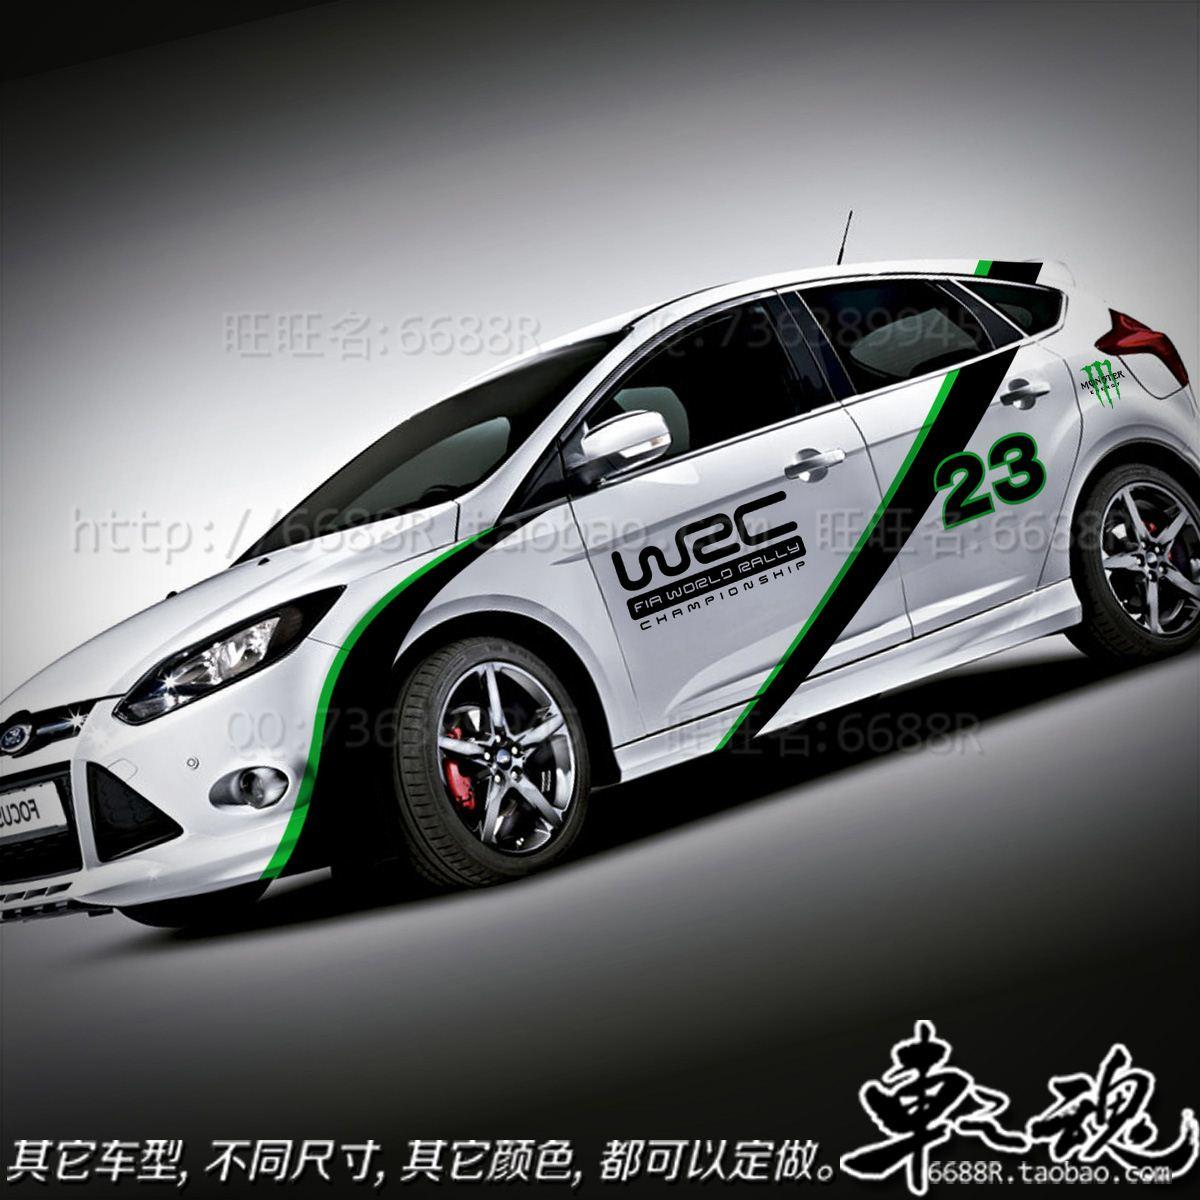 Race car sticker design - The New 2012 Ford Focus Wrc Racing Vehicle Stickers Car Stickers Pull Spend The Whole Car Modified Car Decoration Supplies Exterior Car Decorations Exterior